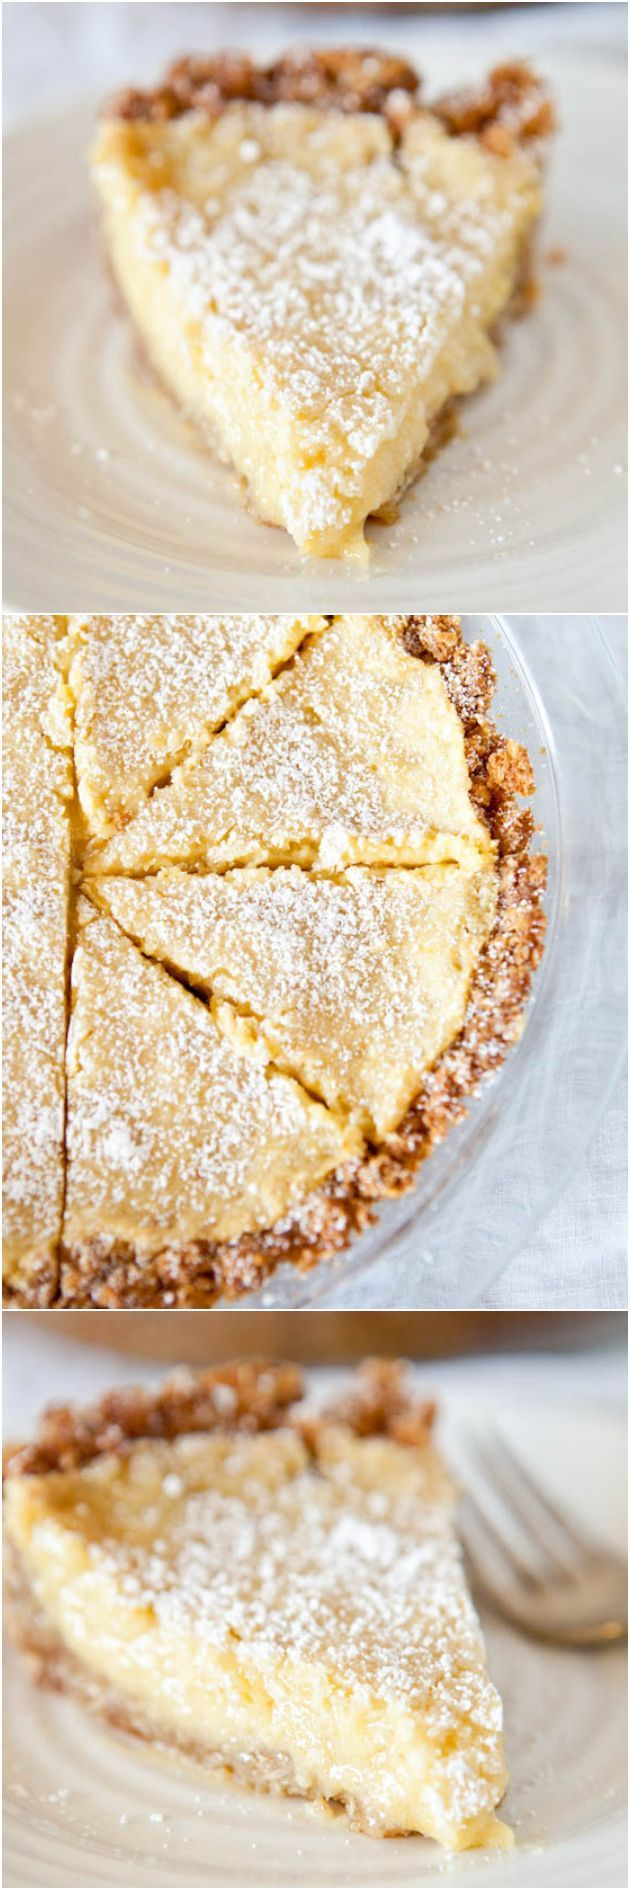 designer ladies bags Crack Pie from the Momofoku Milkbar cookbook   There  39 s a reason this pie has it  39 s name  And it definitely lives up to the hype